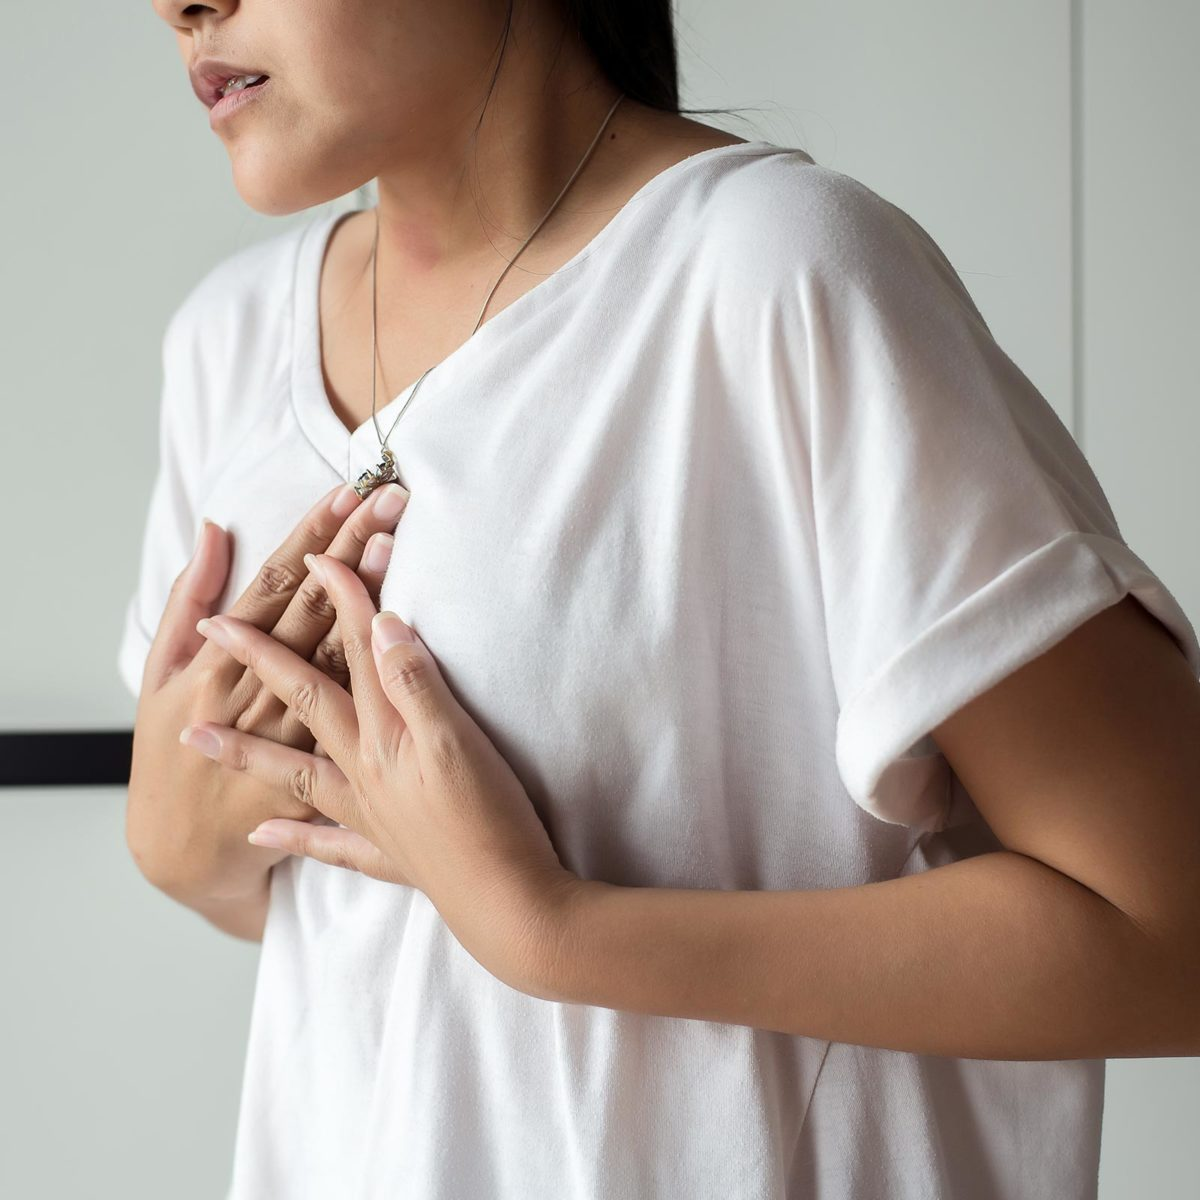 Diseases That Can Lead to Unexplained Weight Loss | Reader's Digest